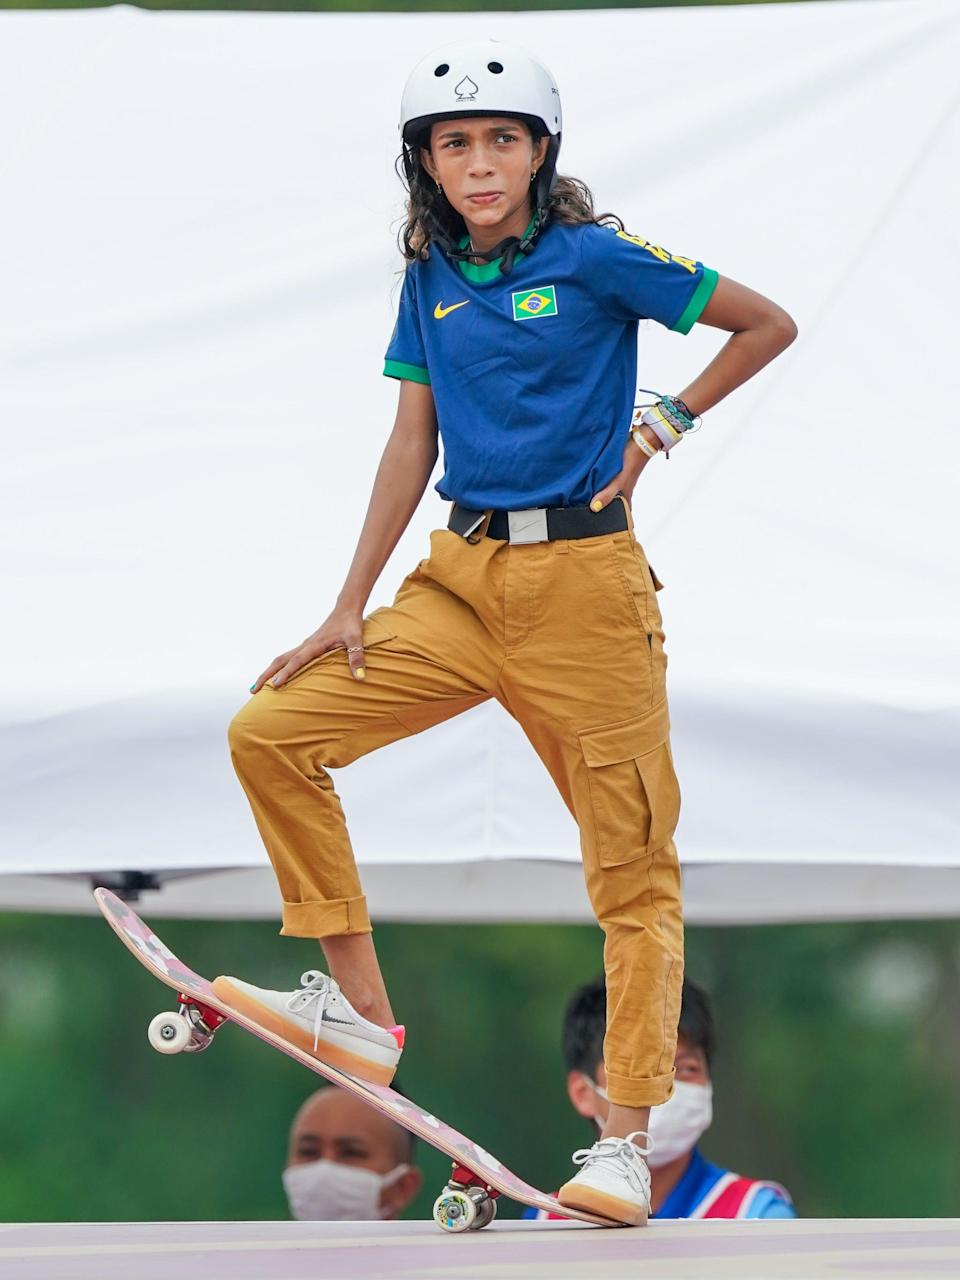 <p>Rayssa Leal of Brazil, who took home a silver medal, jazzed up her uniform top with braided bracelets in complementing colors.</p>